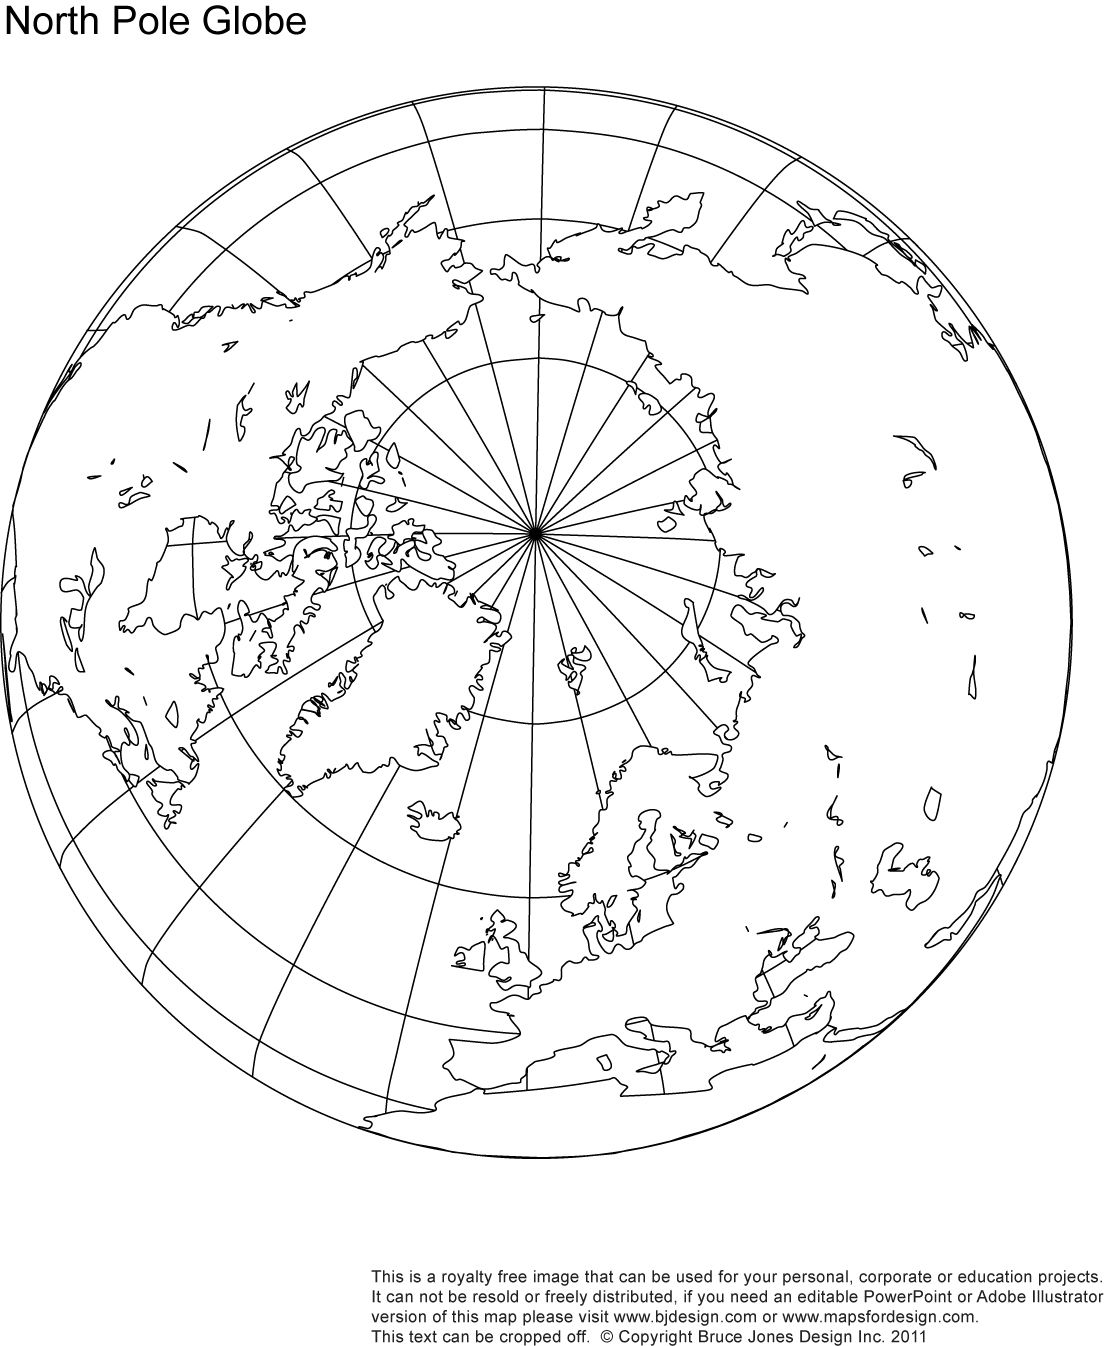 North pole globe map royalty free when mapping the route of the north pole globe map royalty free when mapping the route of the vikings from norway into north america gumiabroncs Choice Image